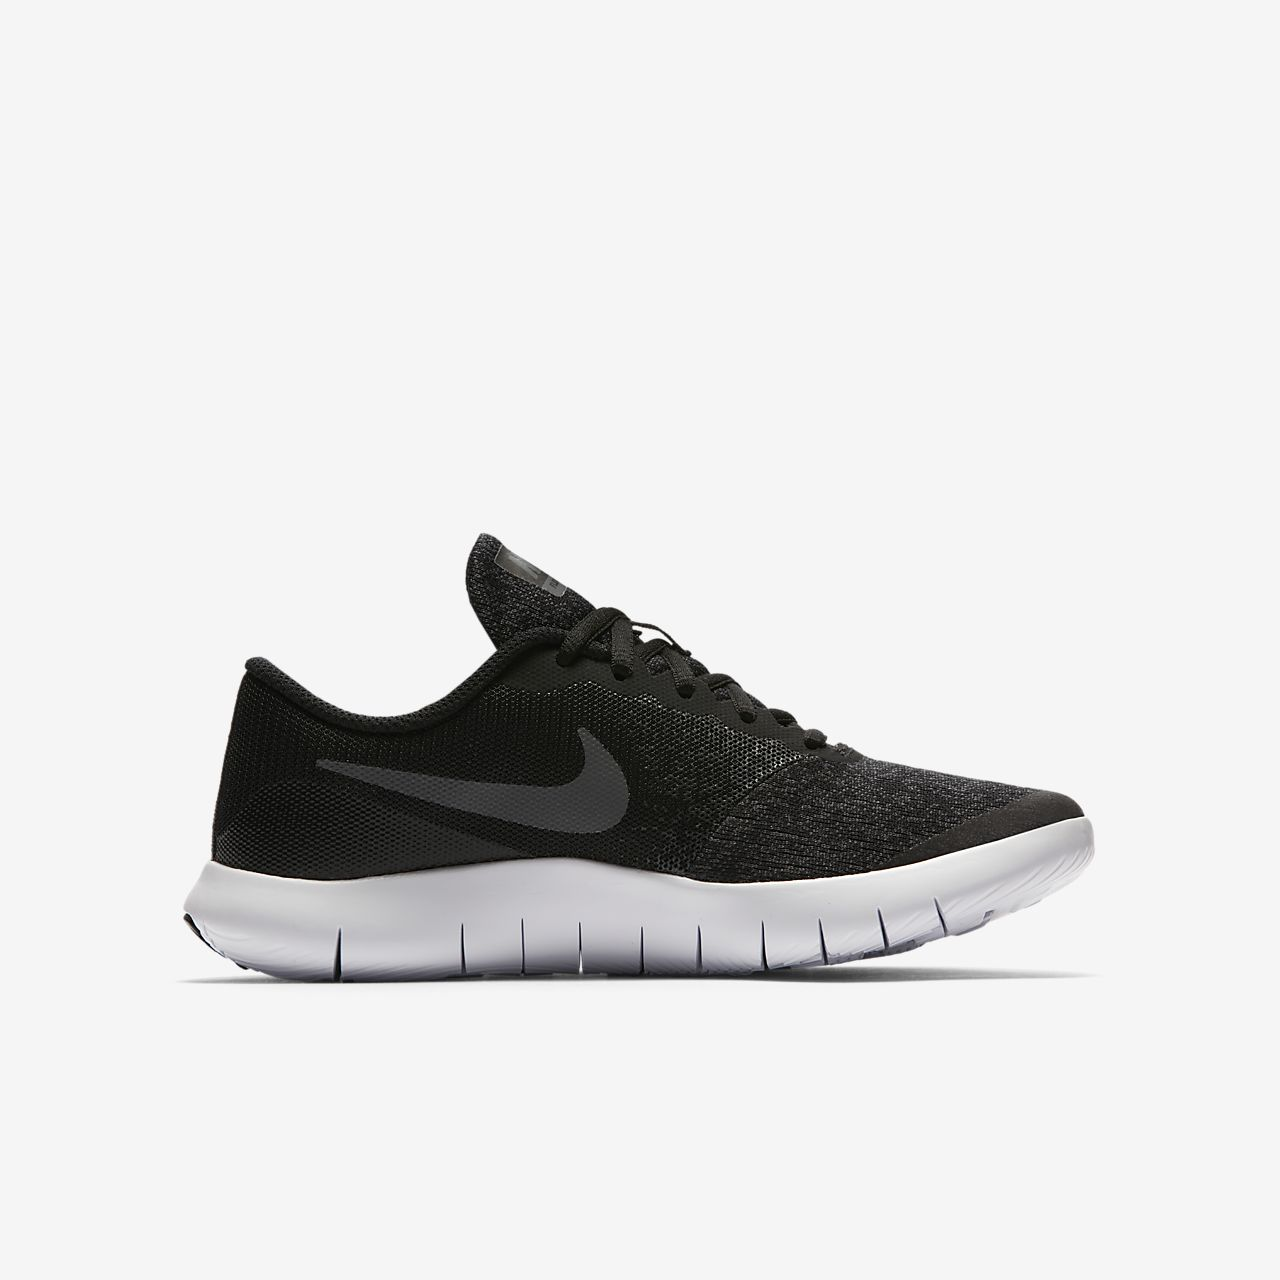 ba3d08b1a6489 Nike Flex Contact Big Kids  Running Shoe. Nike.com